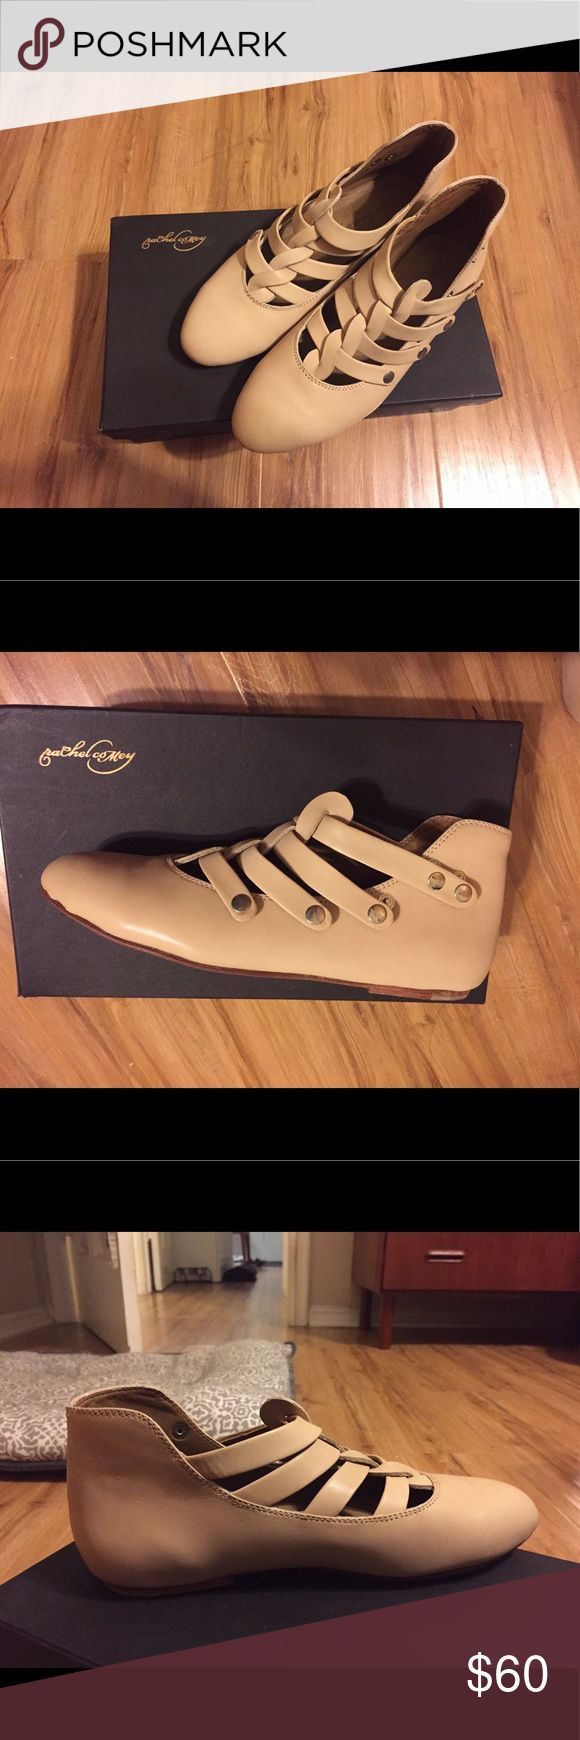 39 Best My Posh Closet Images On Pinterest April Showers Arm Inside Flats Kamelia Beige Rachel Comey Beautiful From Size Says But Fits Like Narrow In Original Box And Comes With Shoe